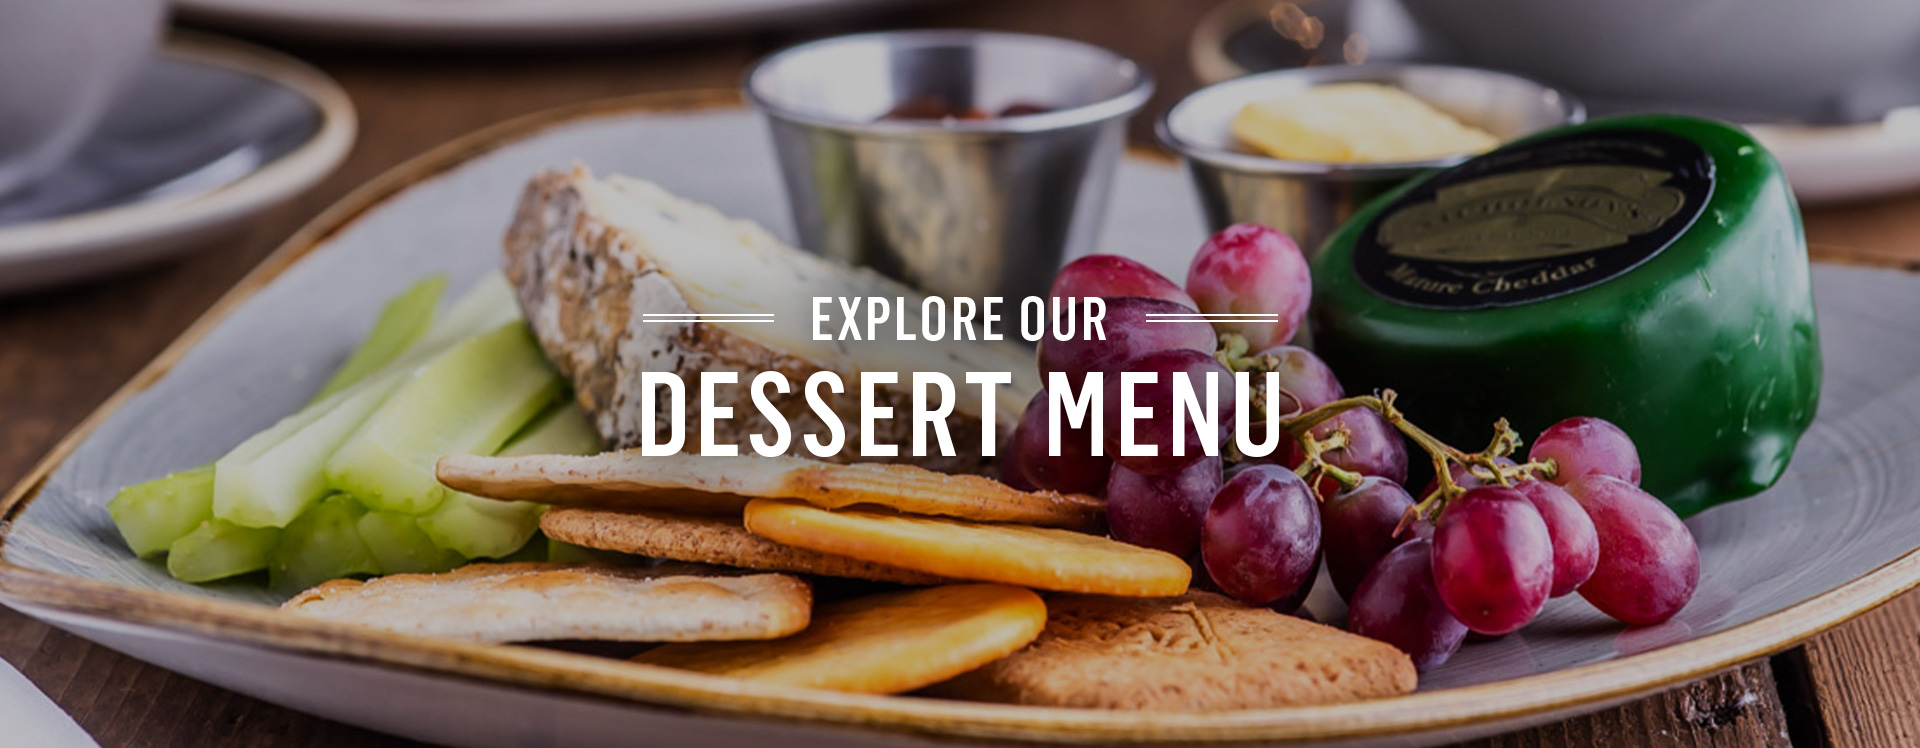 Dessert menu at The Coal Hole - Book a table